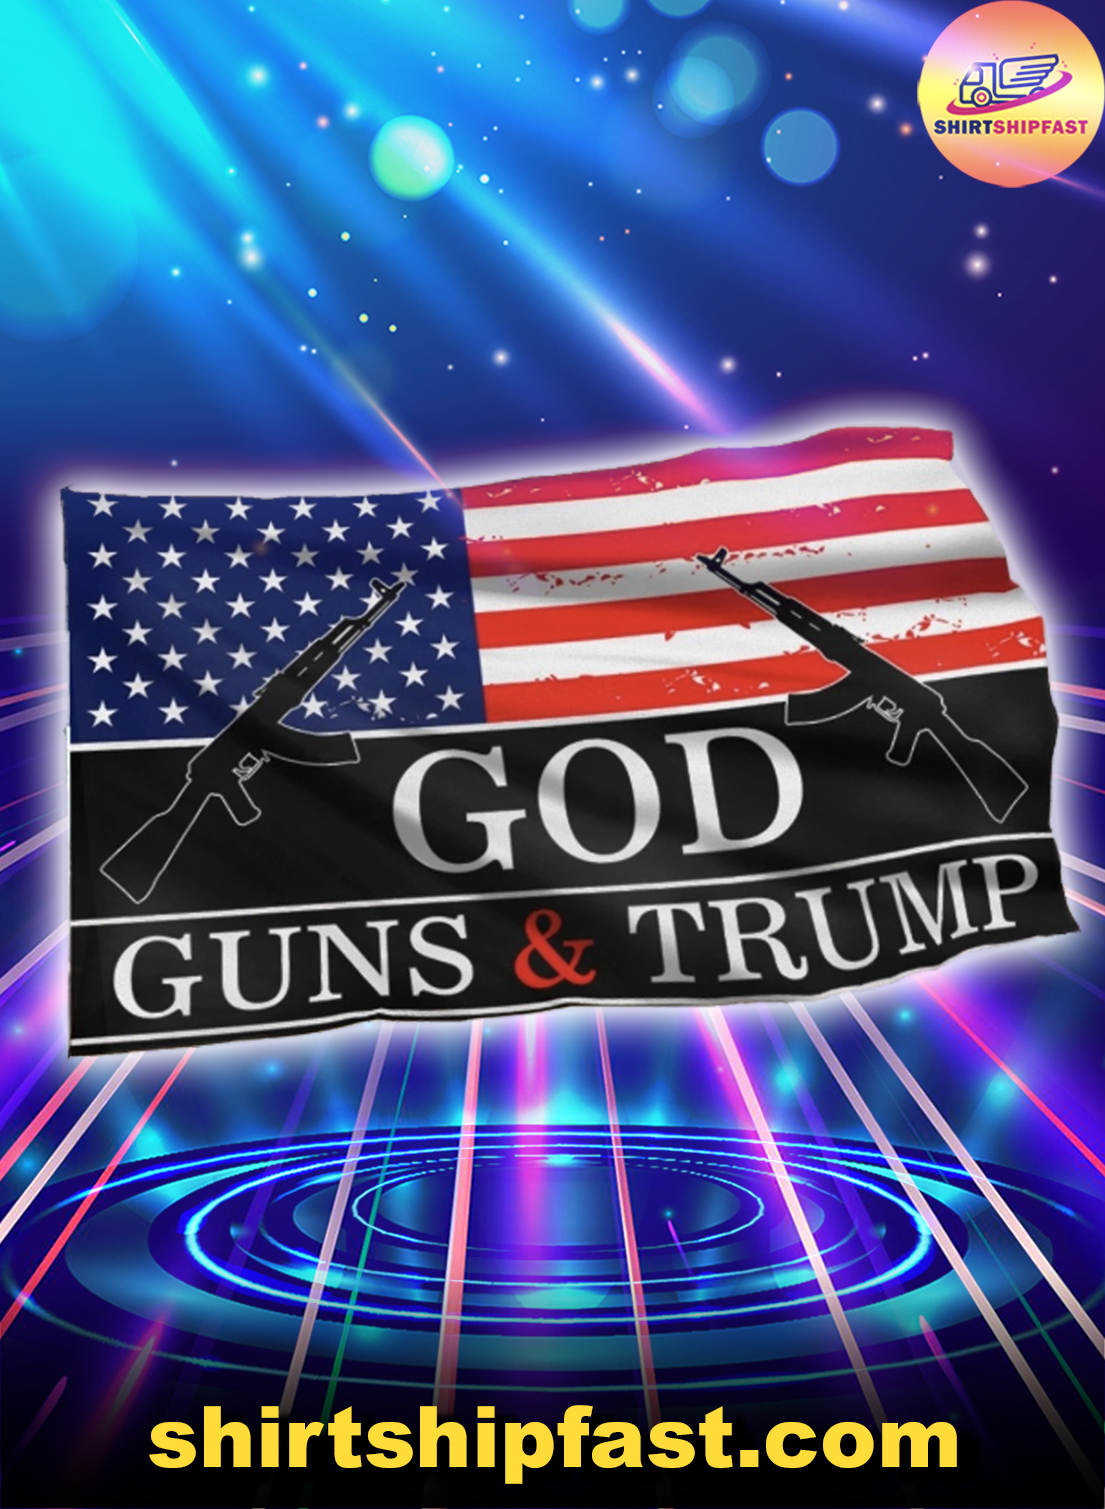 God guns and Trump flag - Picture 1